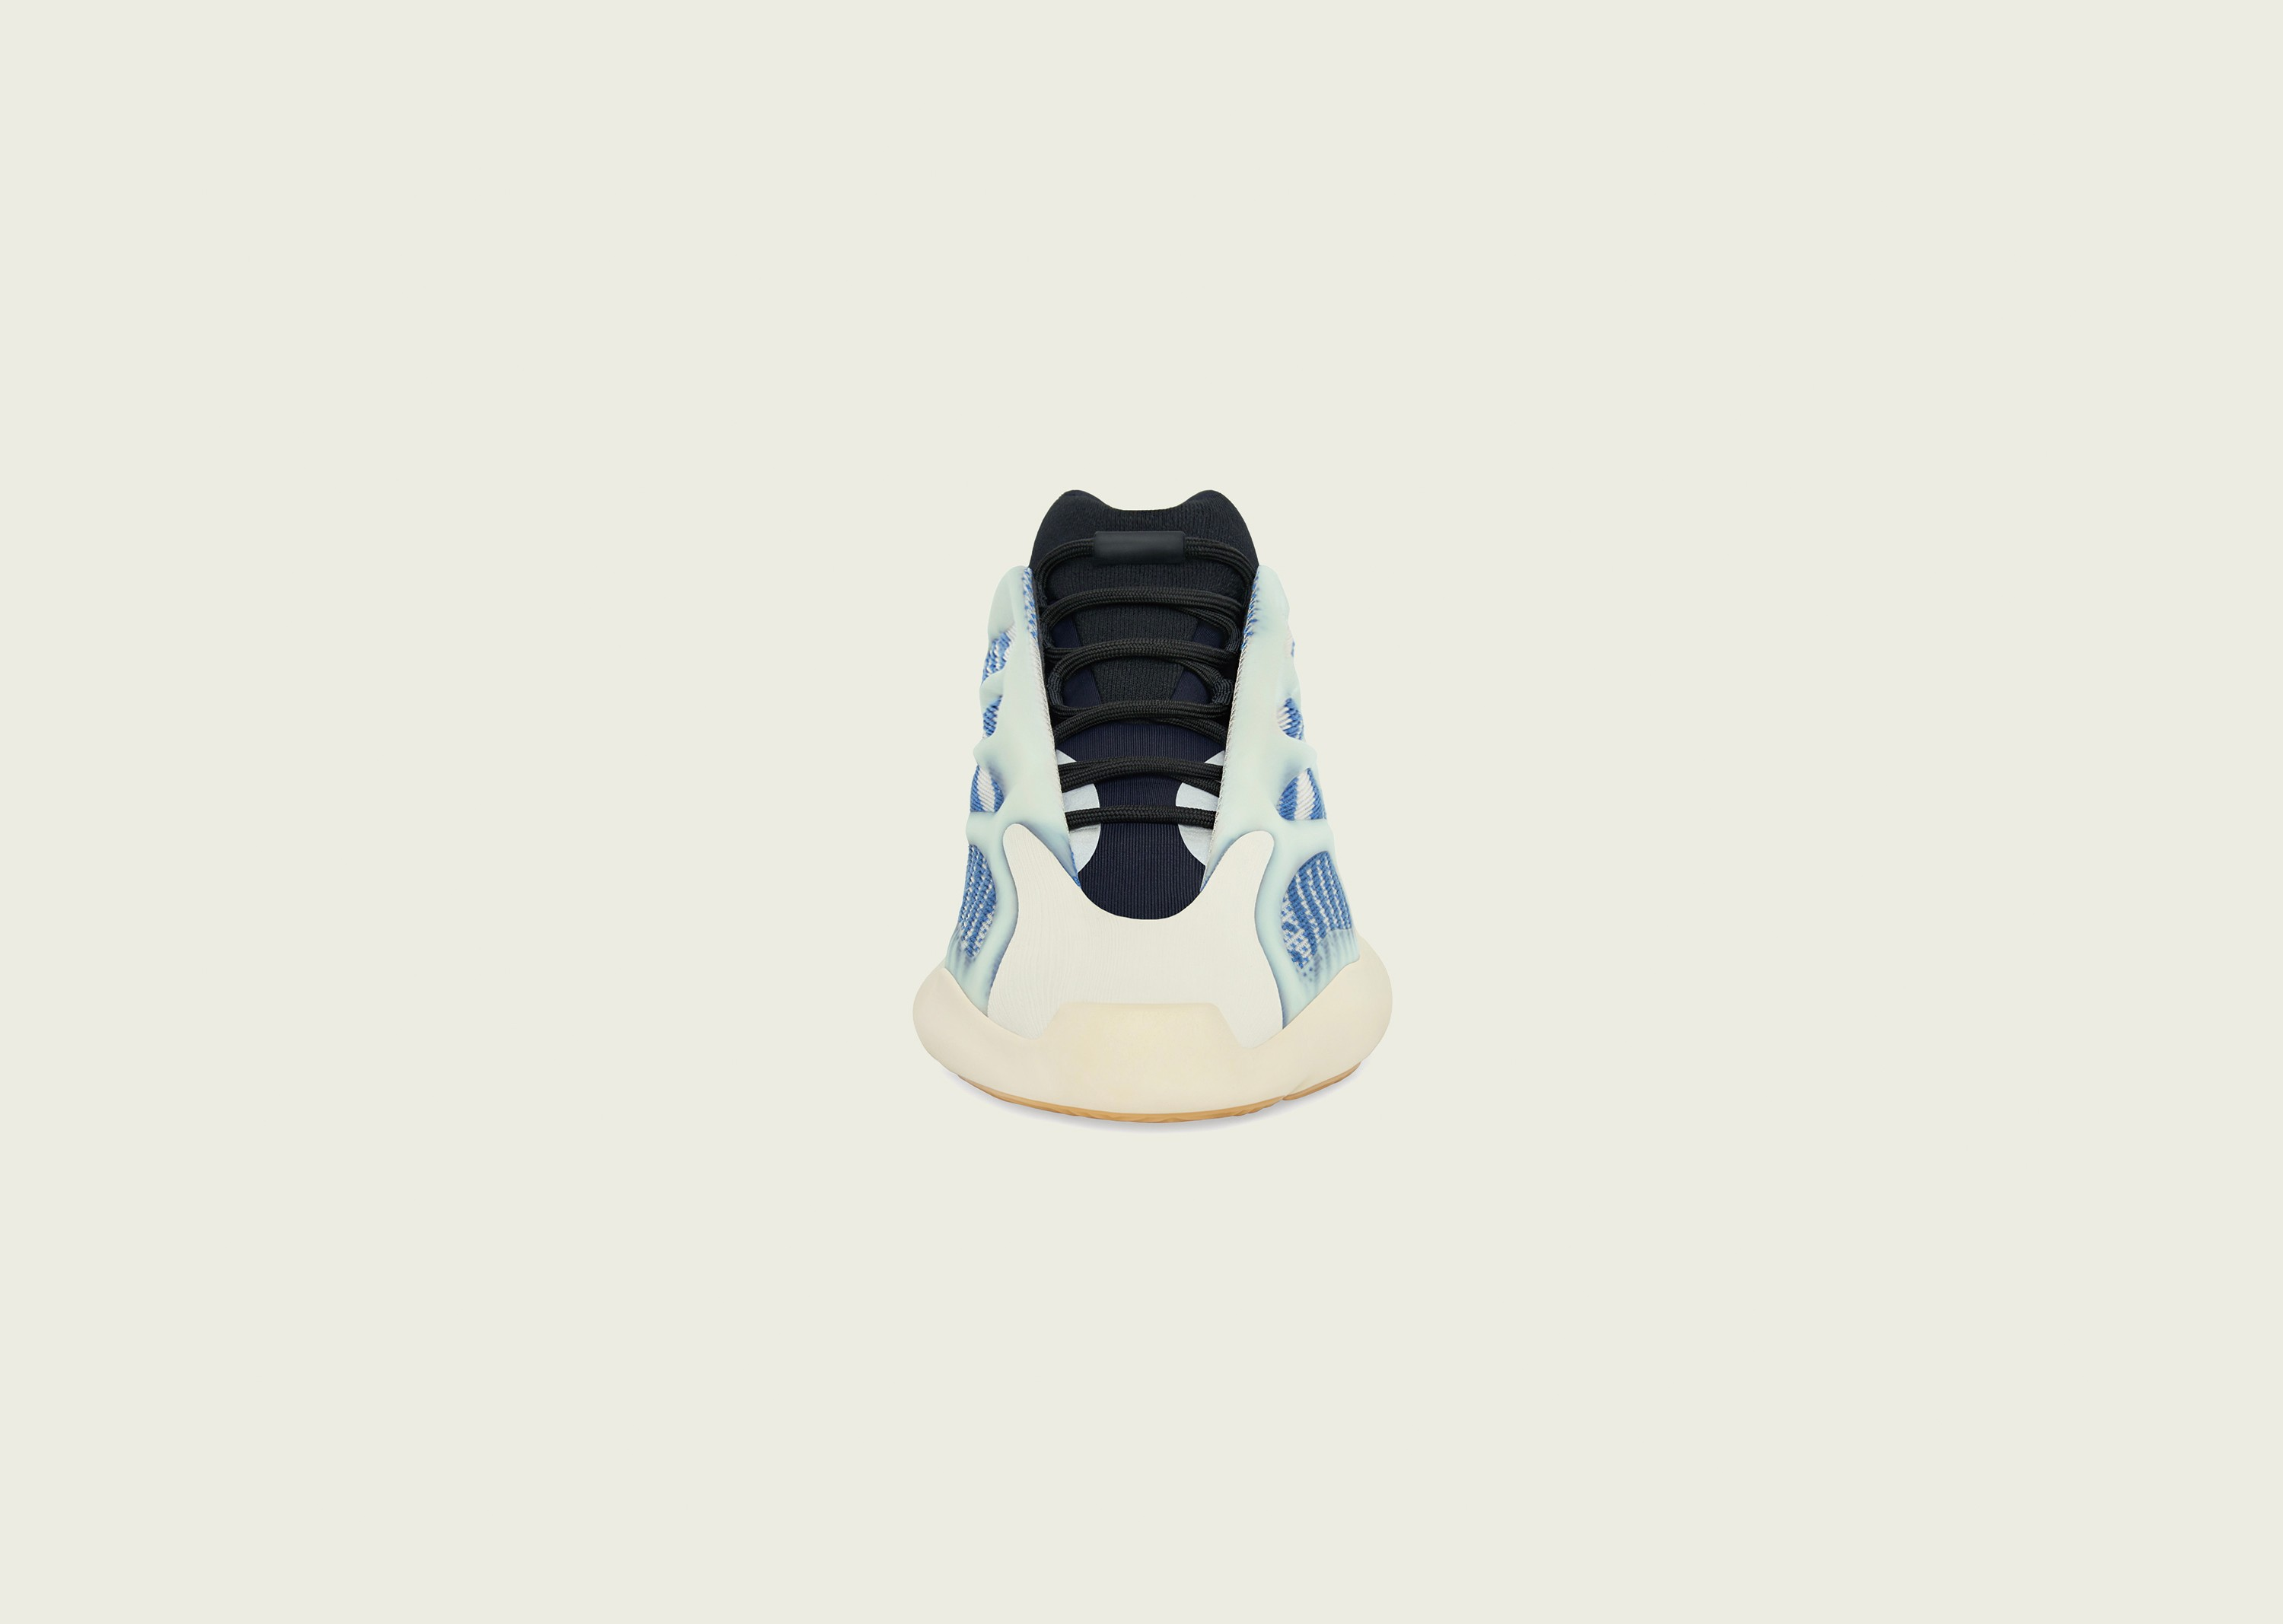 700_kyanite_blog_0003_YEEZY_700_V3_KYANITE_Front_Social_FB_2500x1878